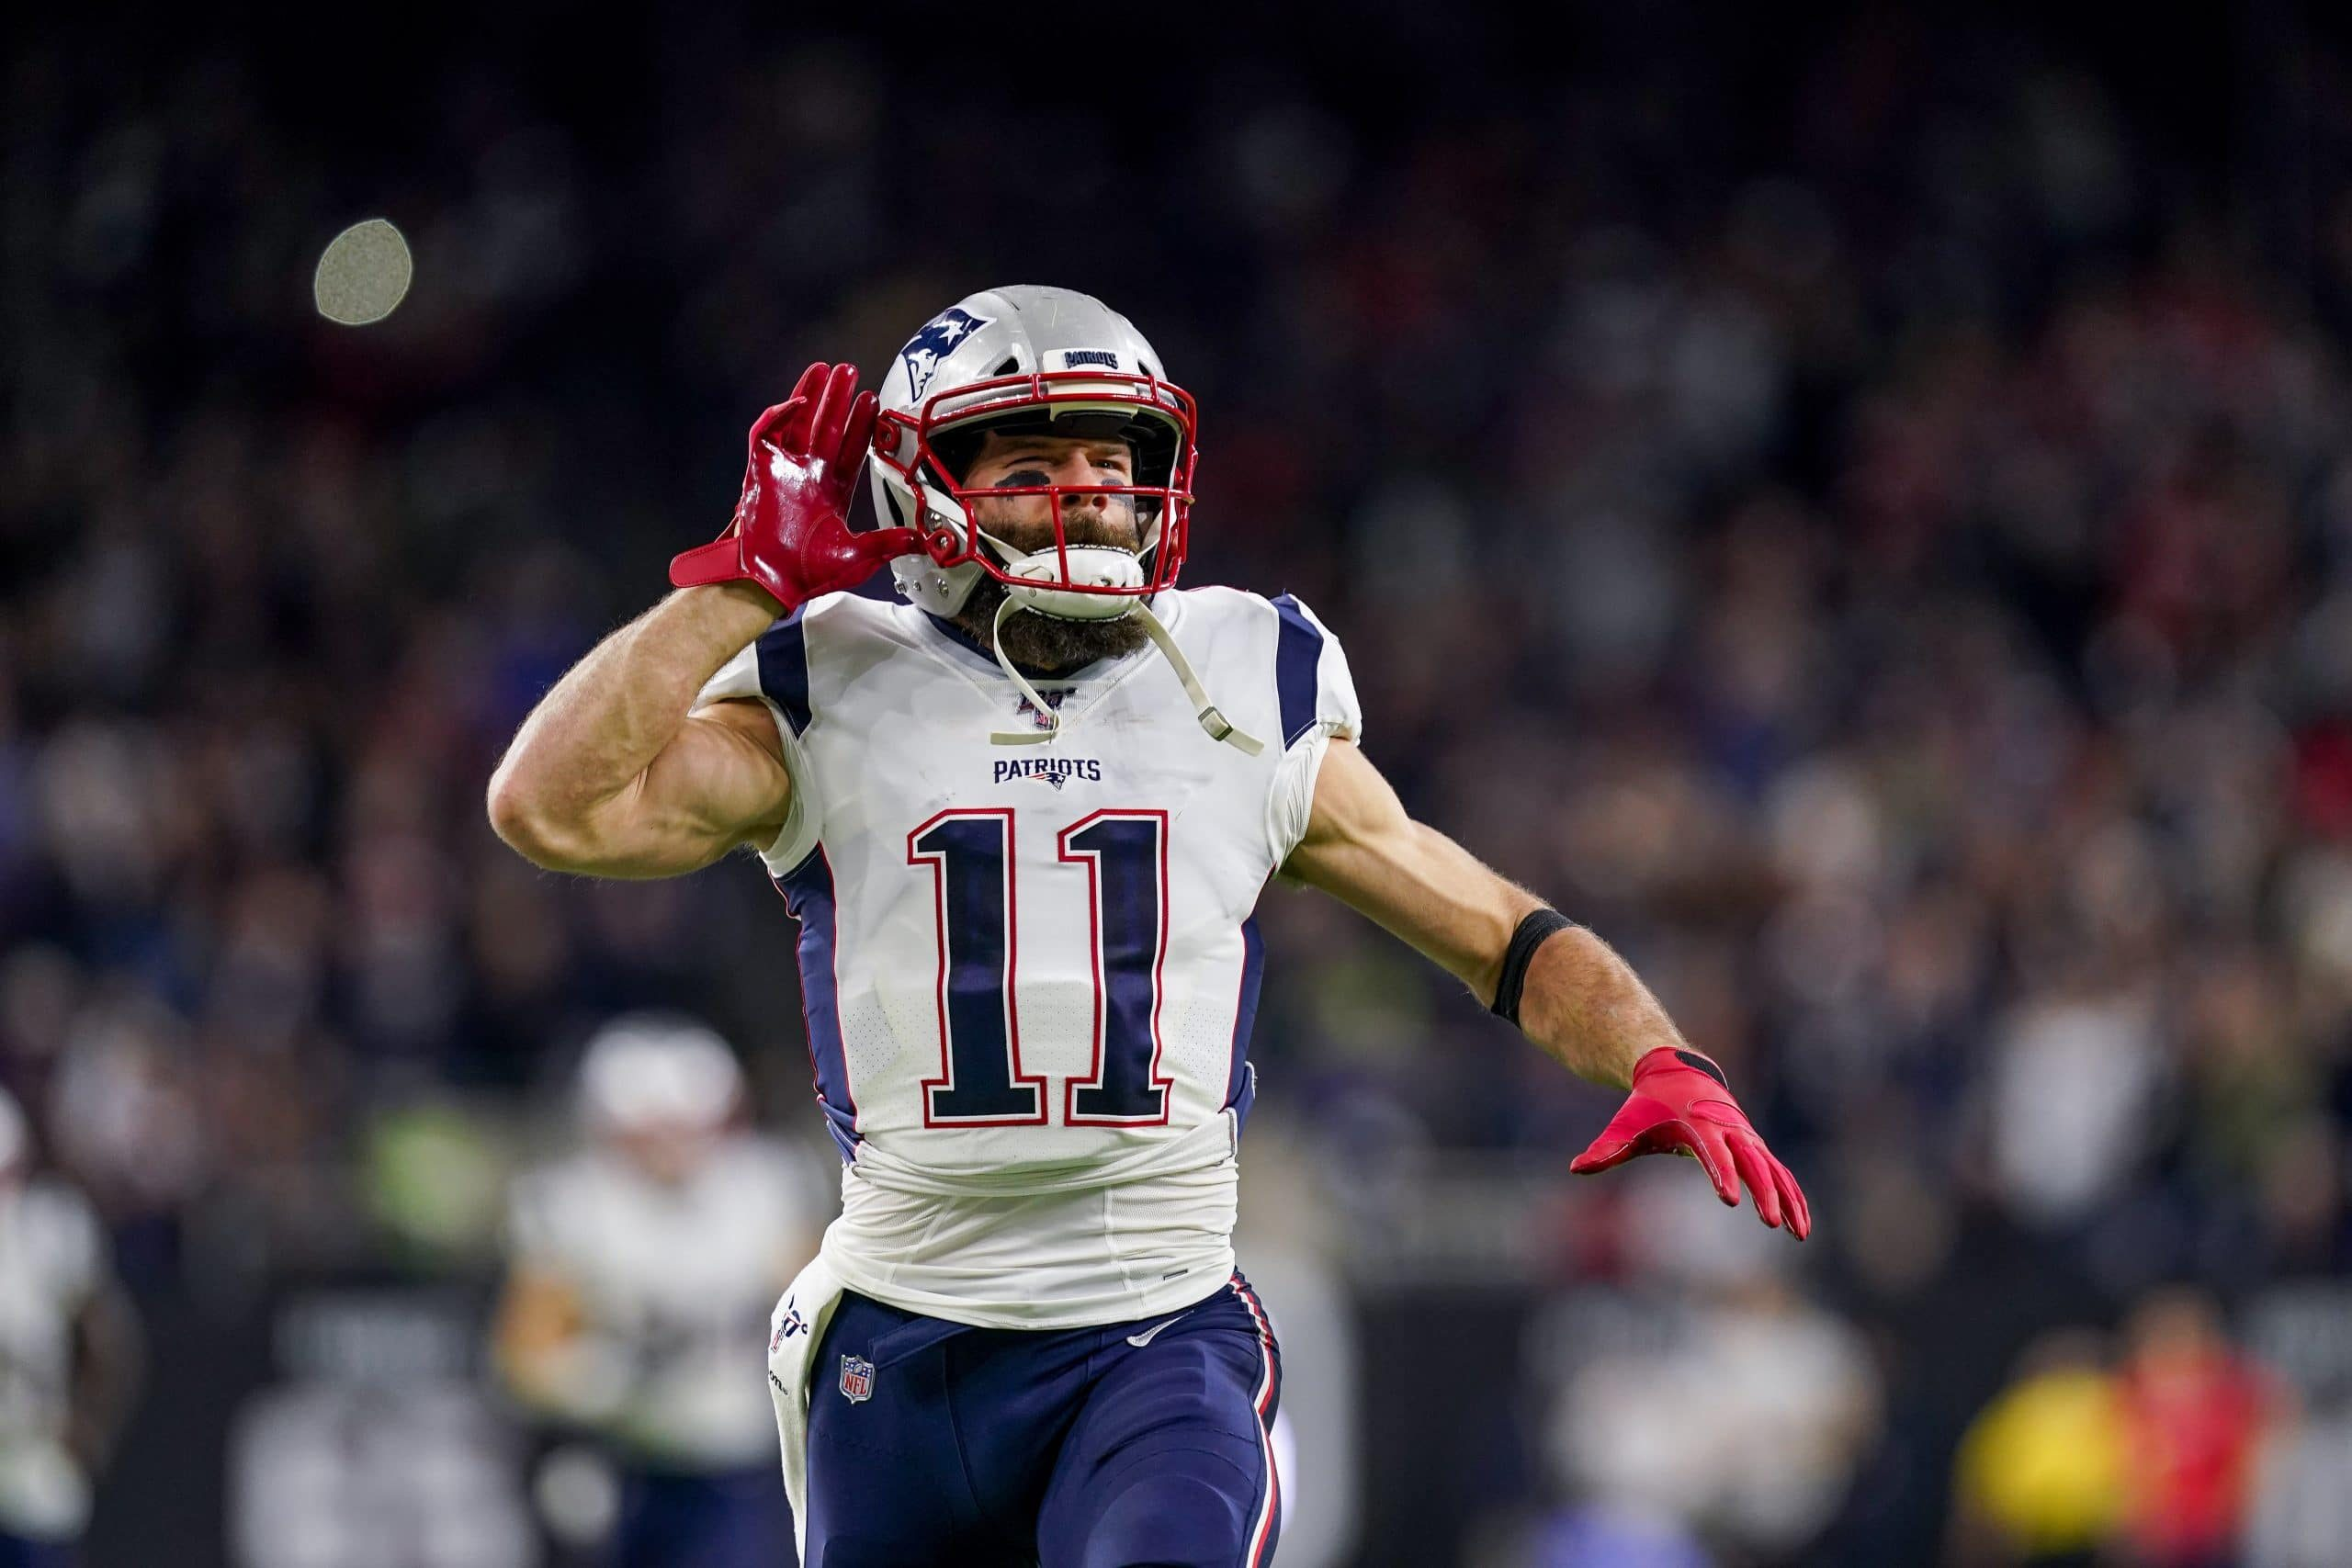 HOUSTON, TX - DECEMBER 01: New England Patriots wide receiver Julian Edelman (11) runs onto the field before the game be